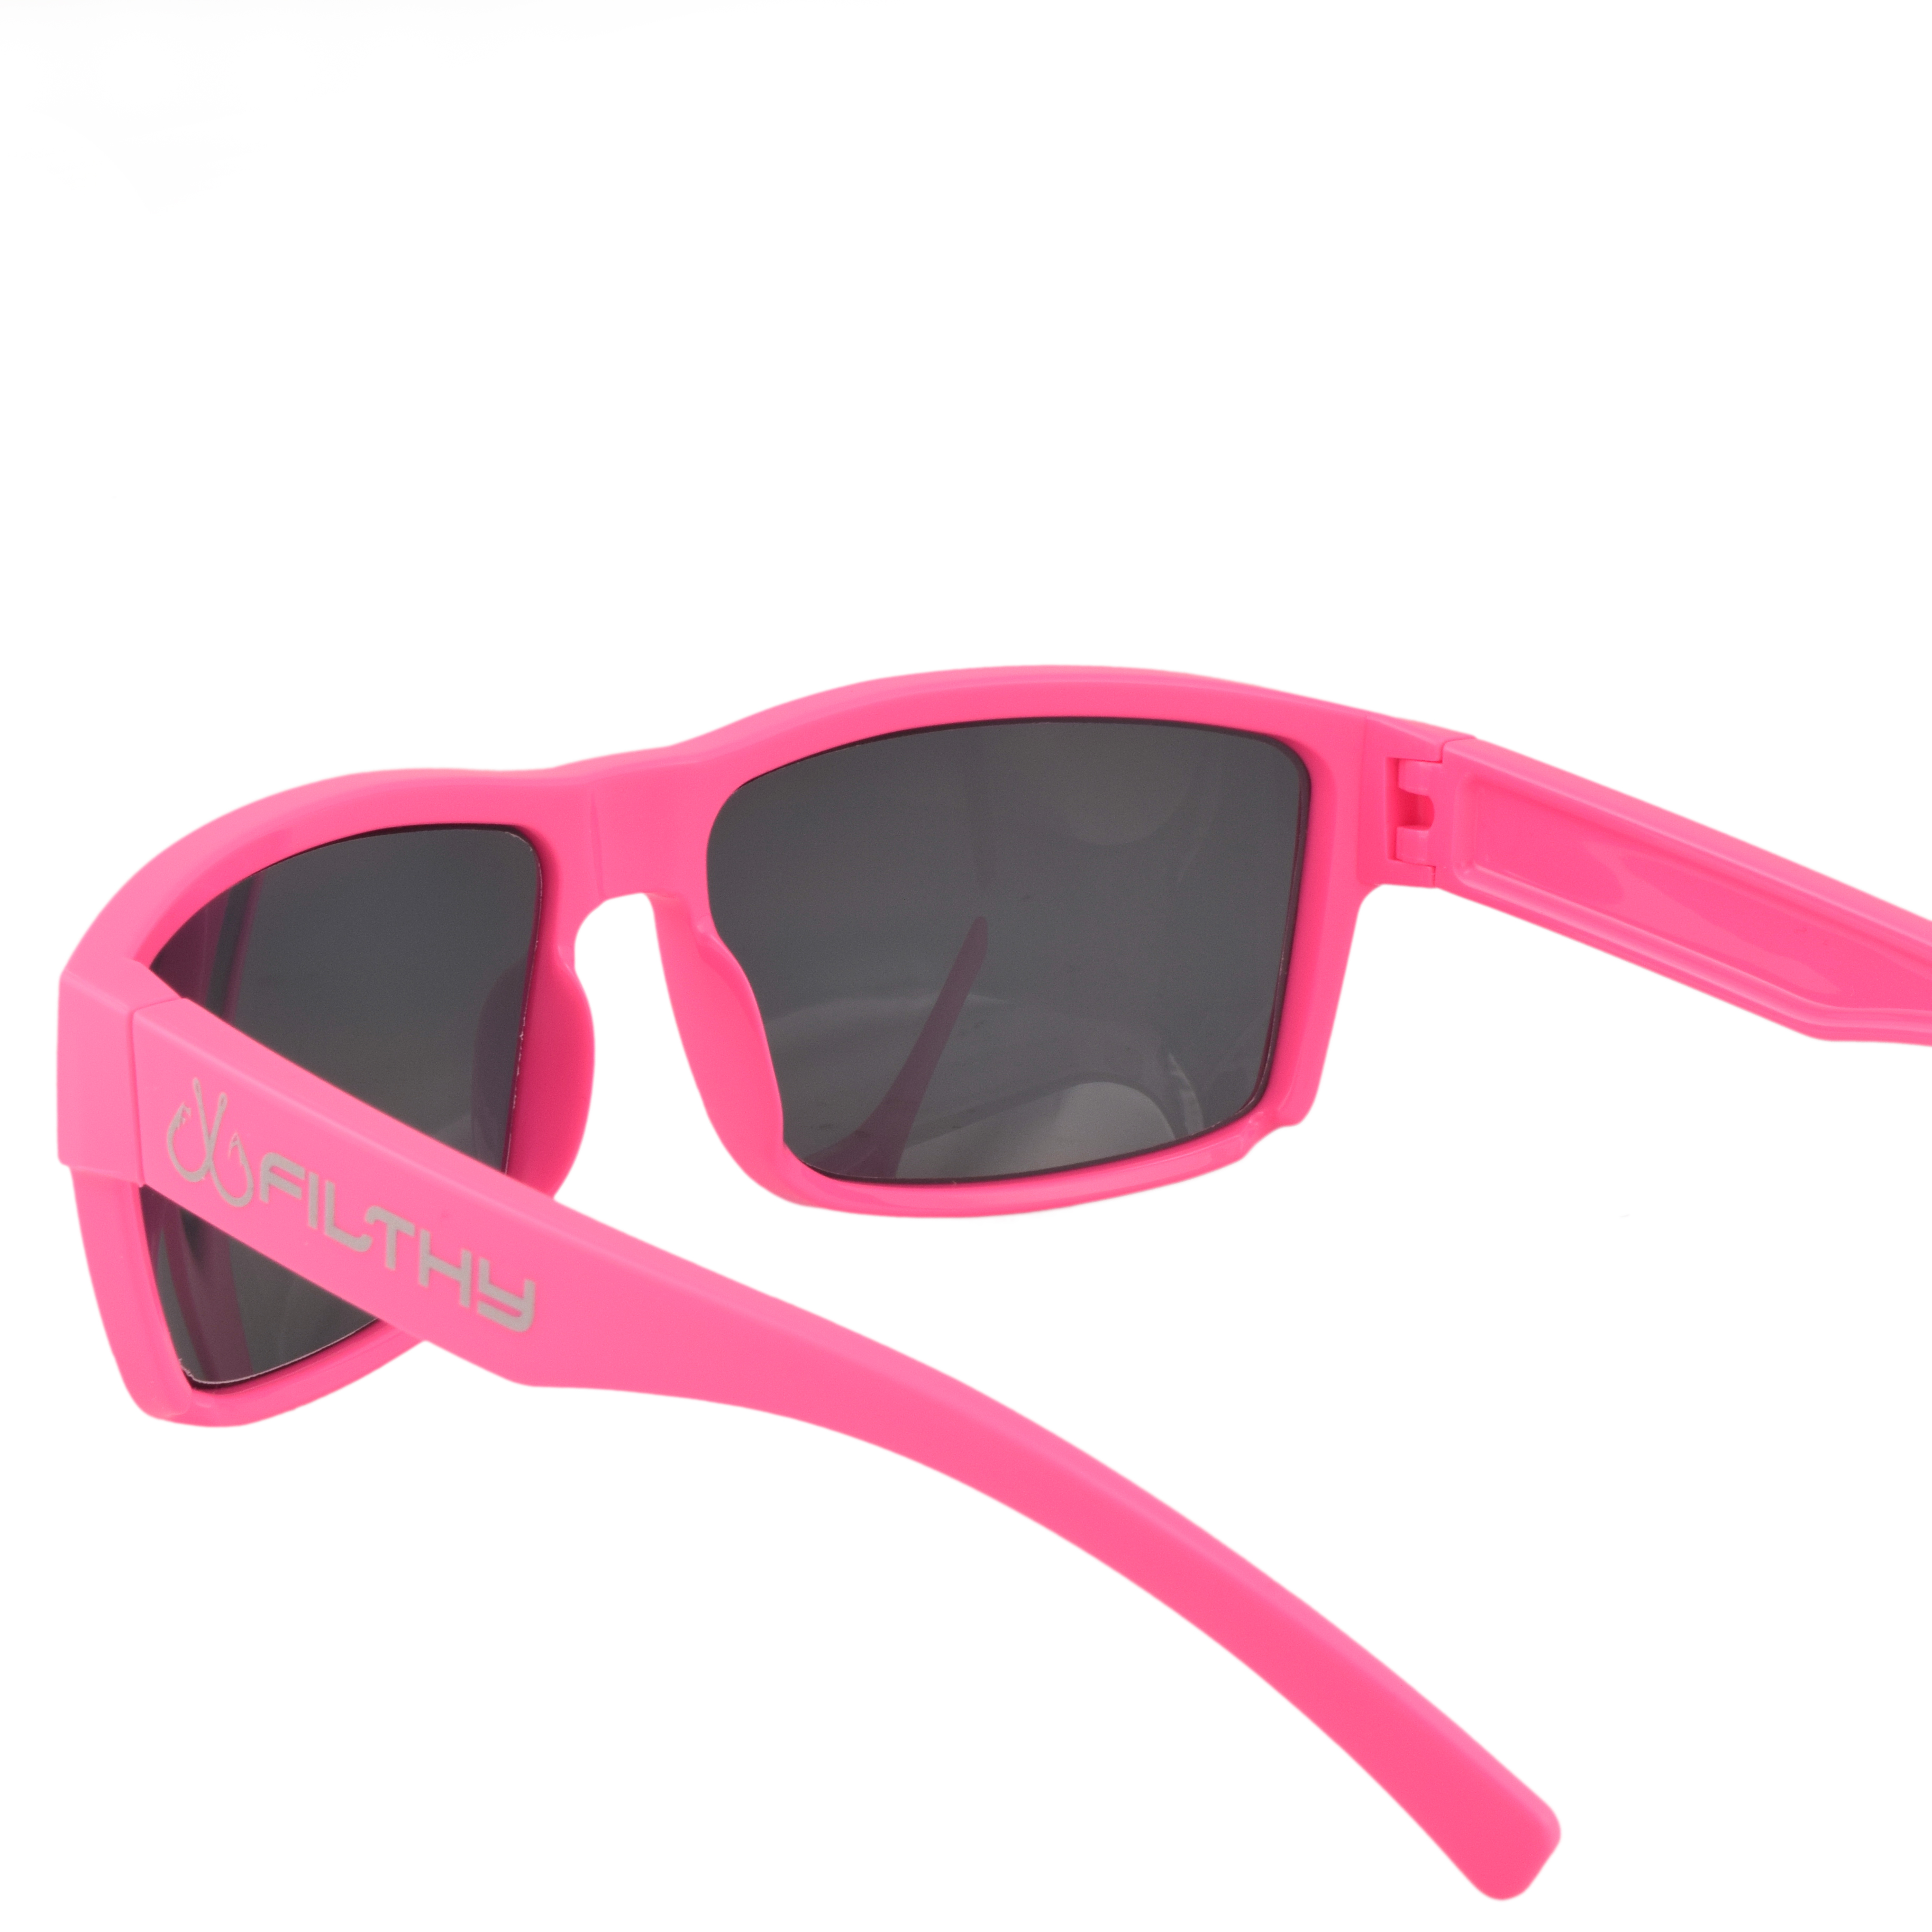 a2b16d0662b Fishing Sunglasses Walmart - Restaurant and Palinka Bar